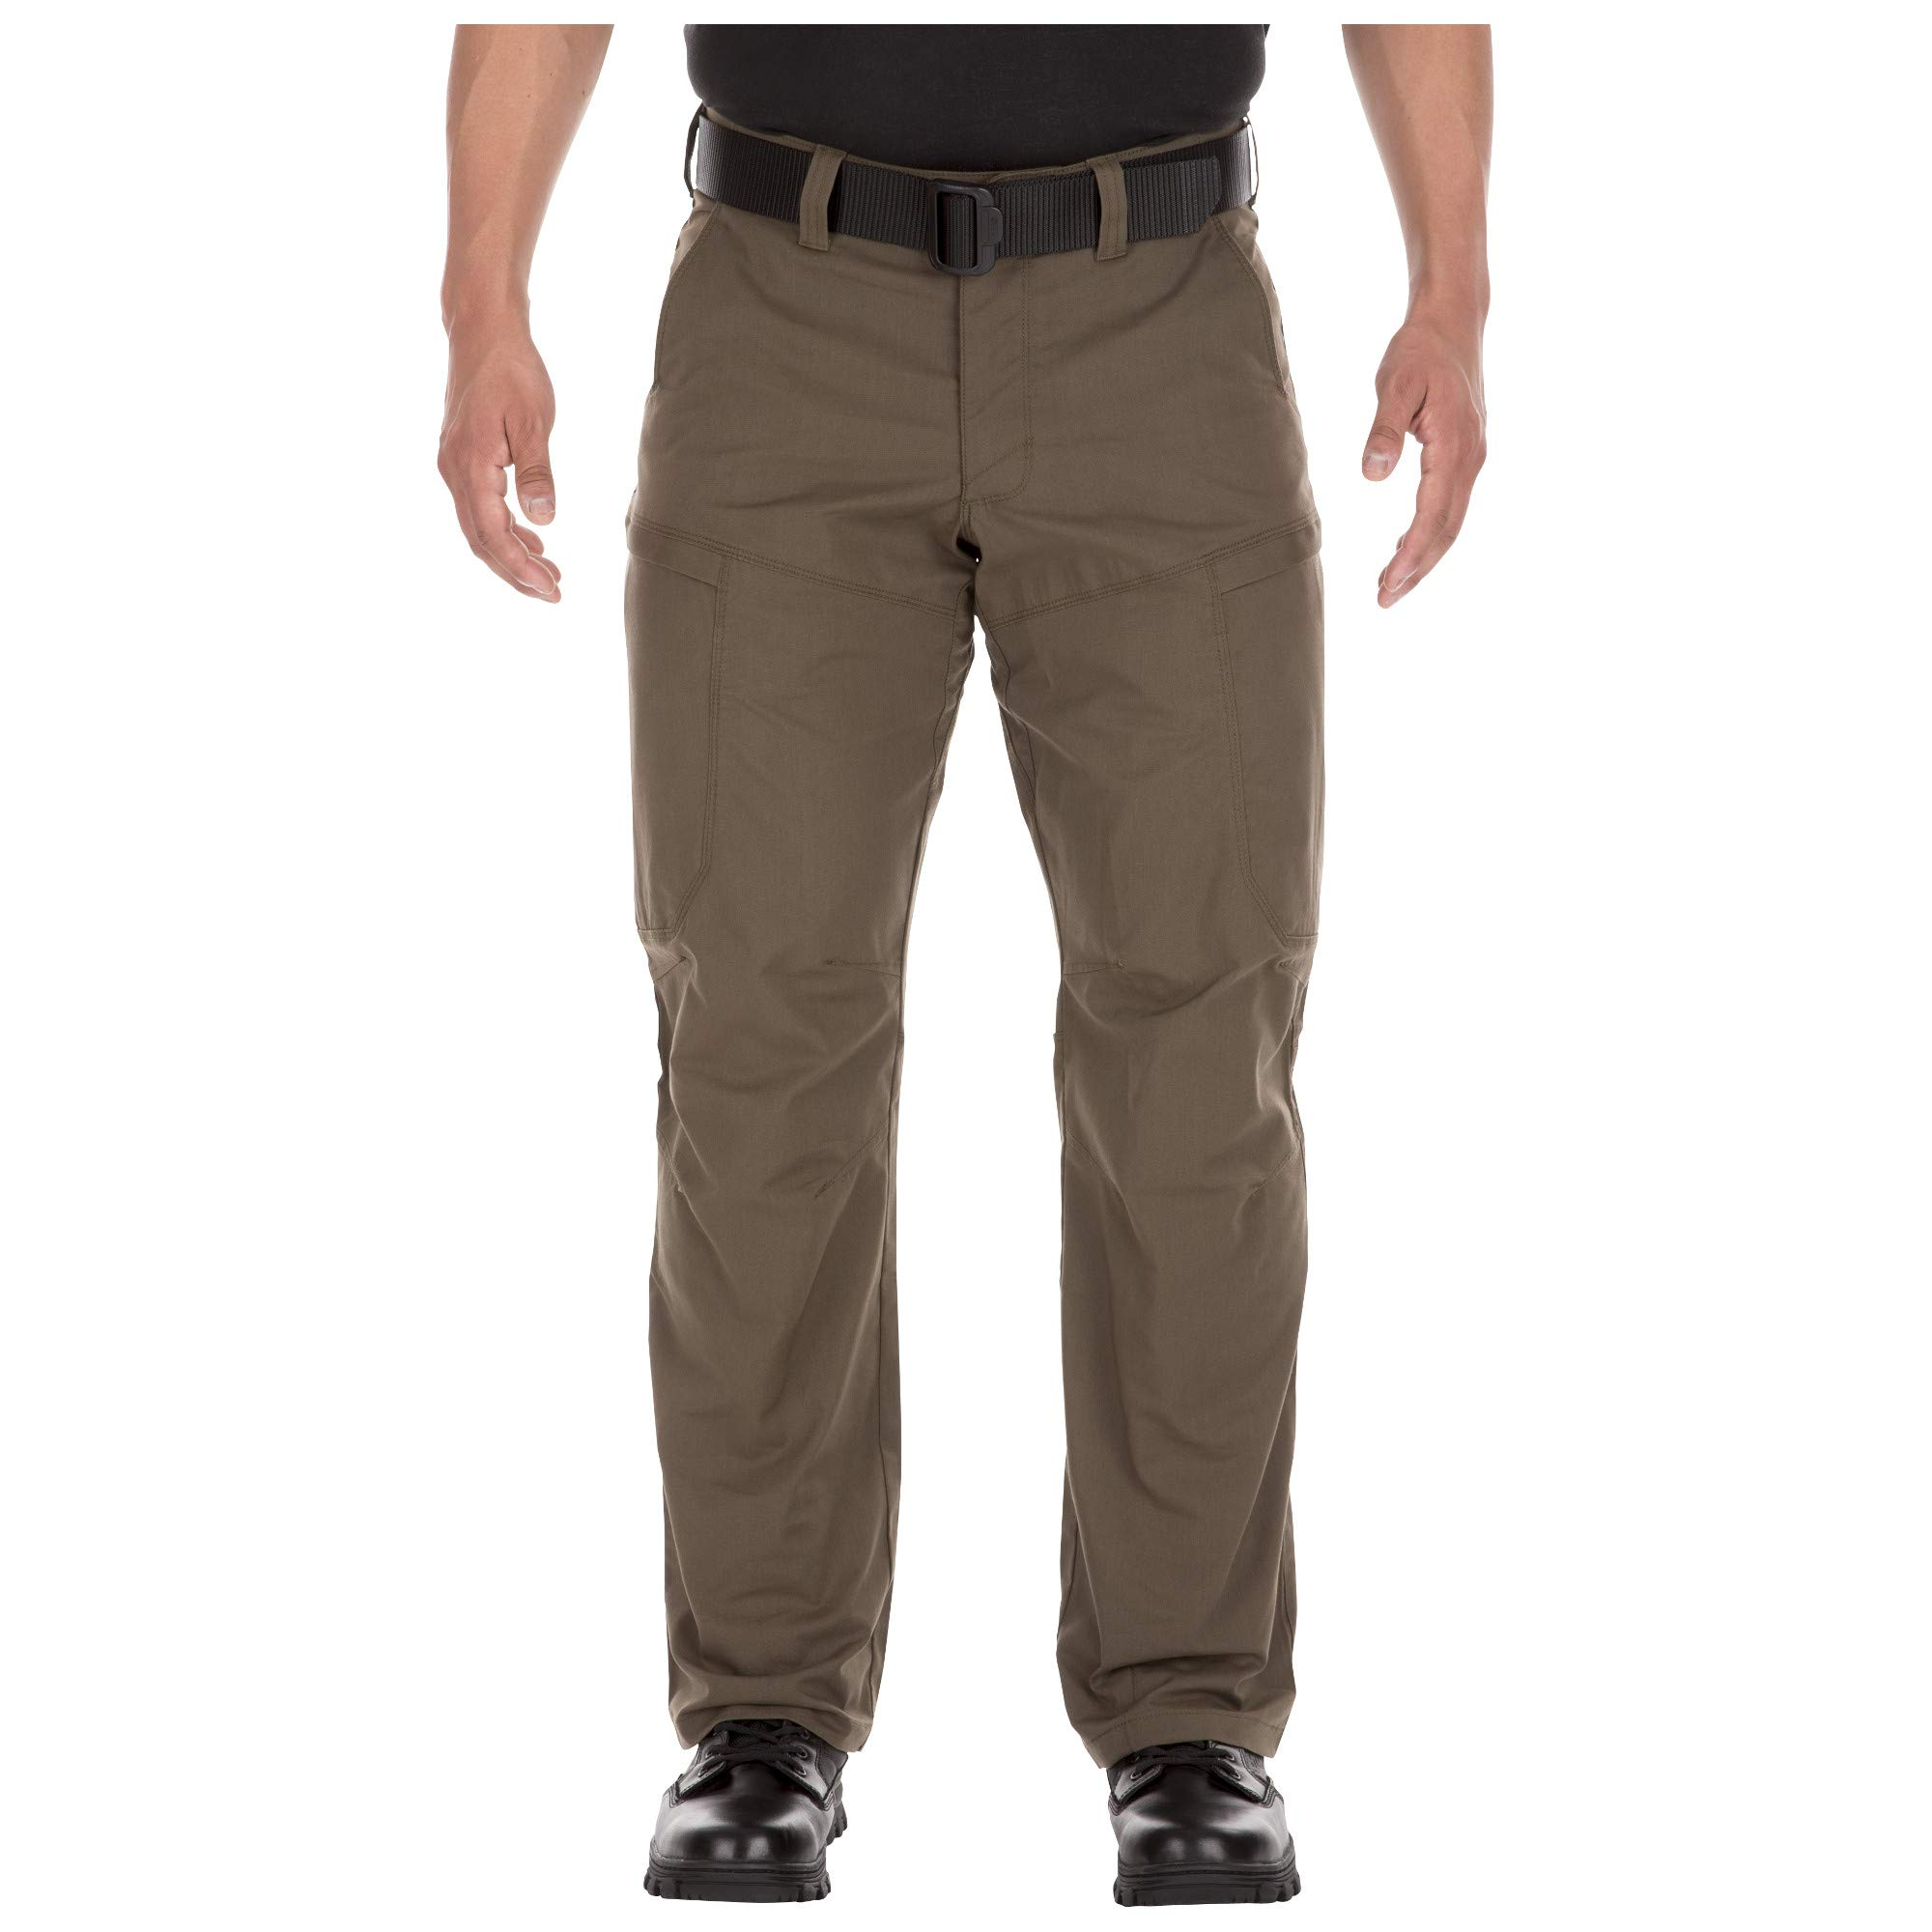 5.11 Men's APEX EDC Stealth Cargo Pocket Tactical Pant Style 74434, Tundra, 35W x 36L by 5.11